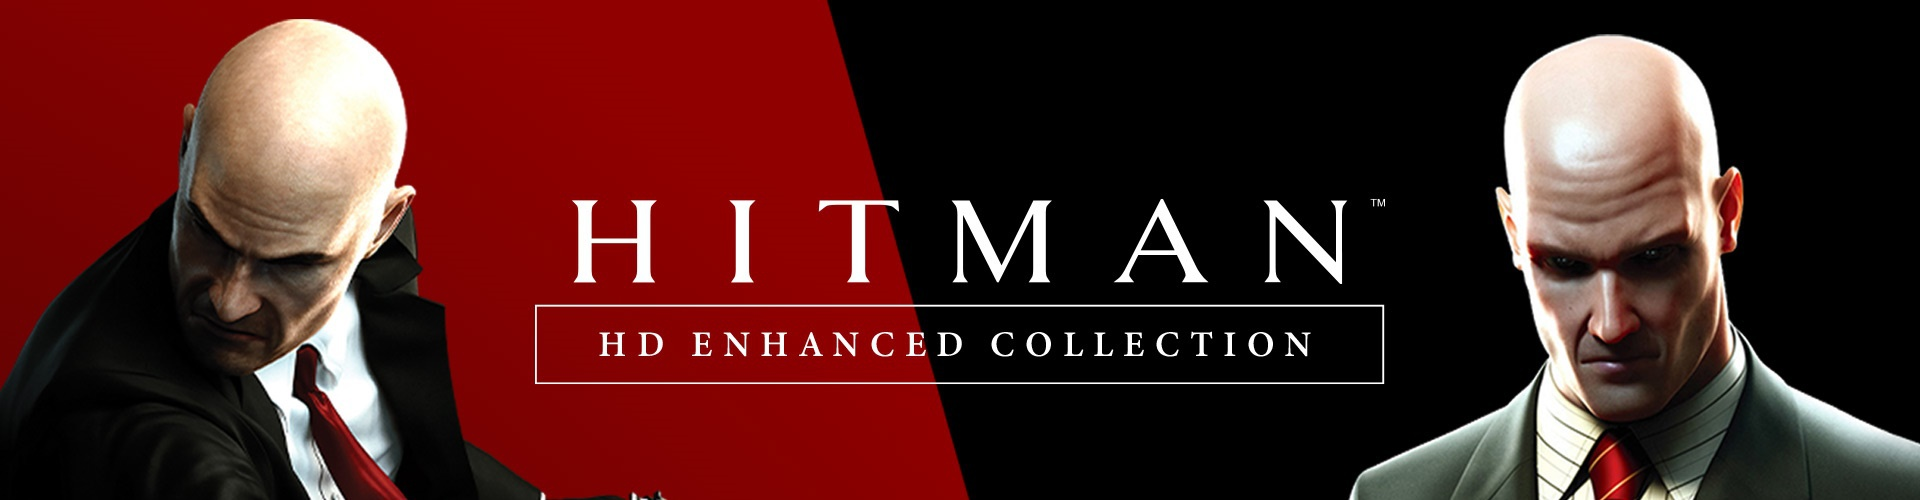 hitman-hd-enhanced-co3afif.jpg